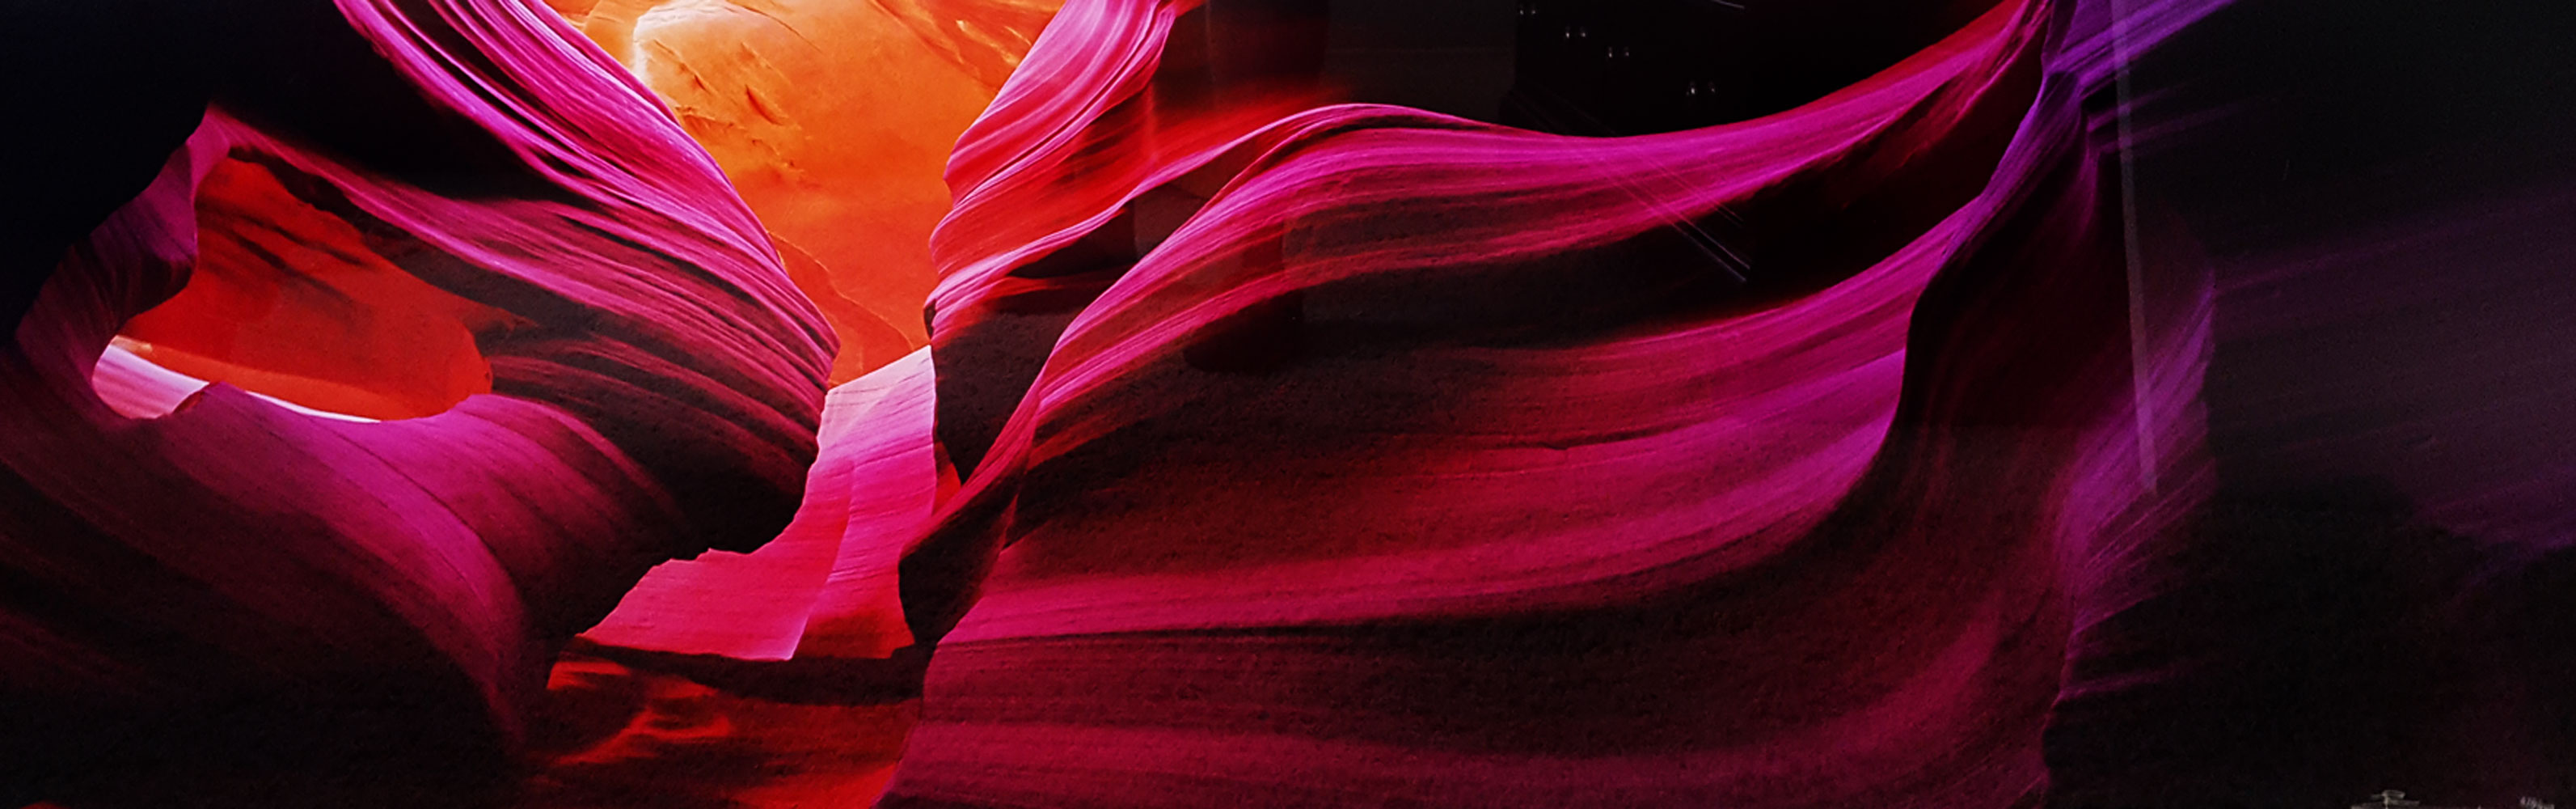 Angel's Heart (Antelope Canyon, AZ)